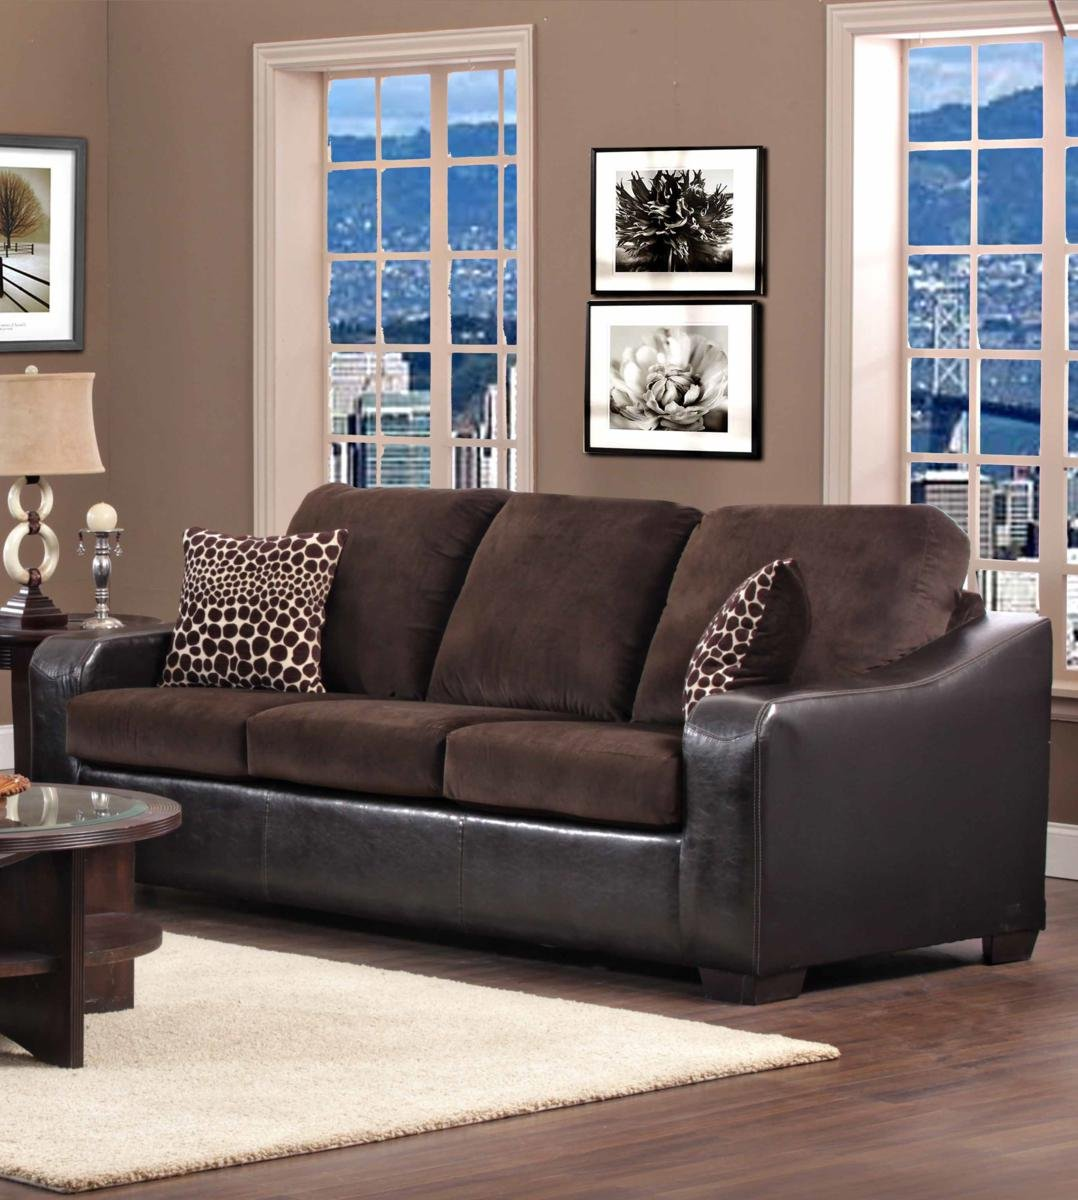 Chelsea Home Furniture Kappa Sofa - Jefferson Chocolate/Explosion Coffee